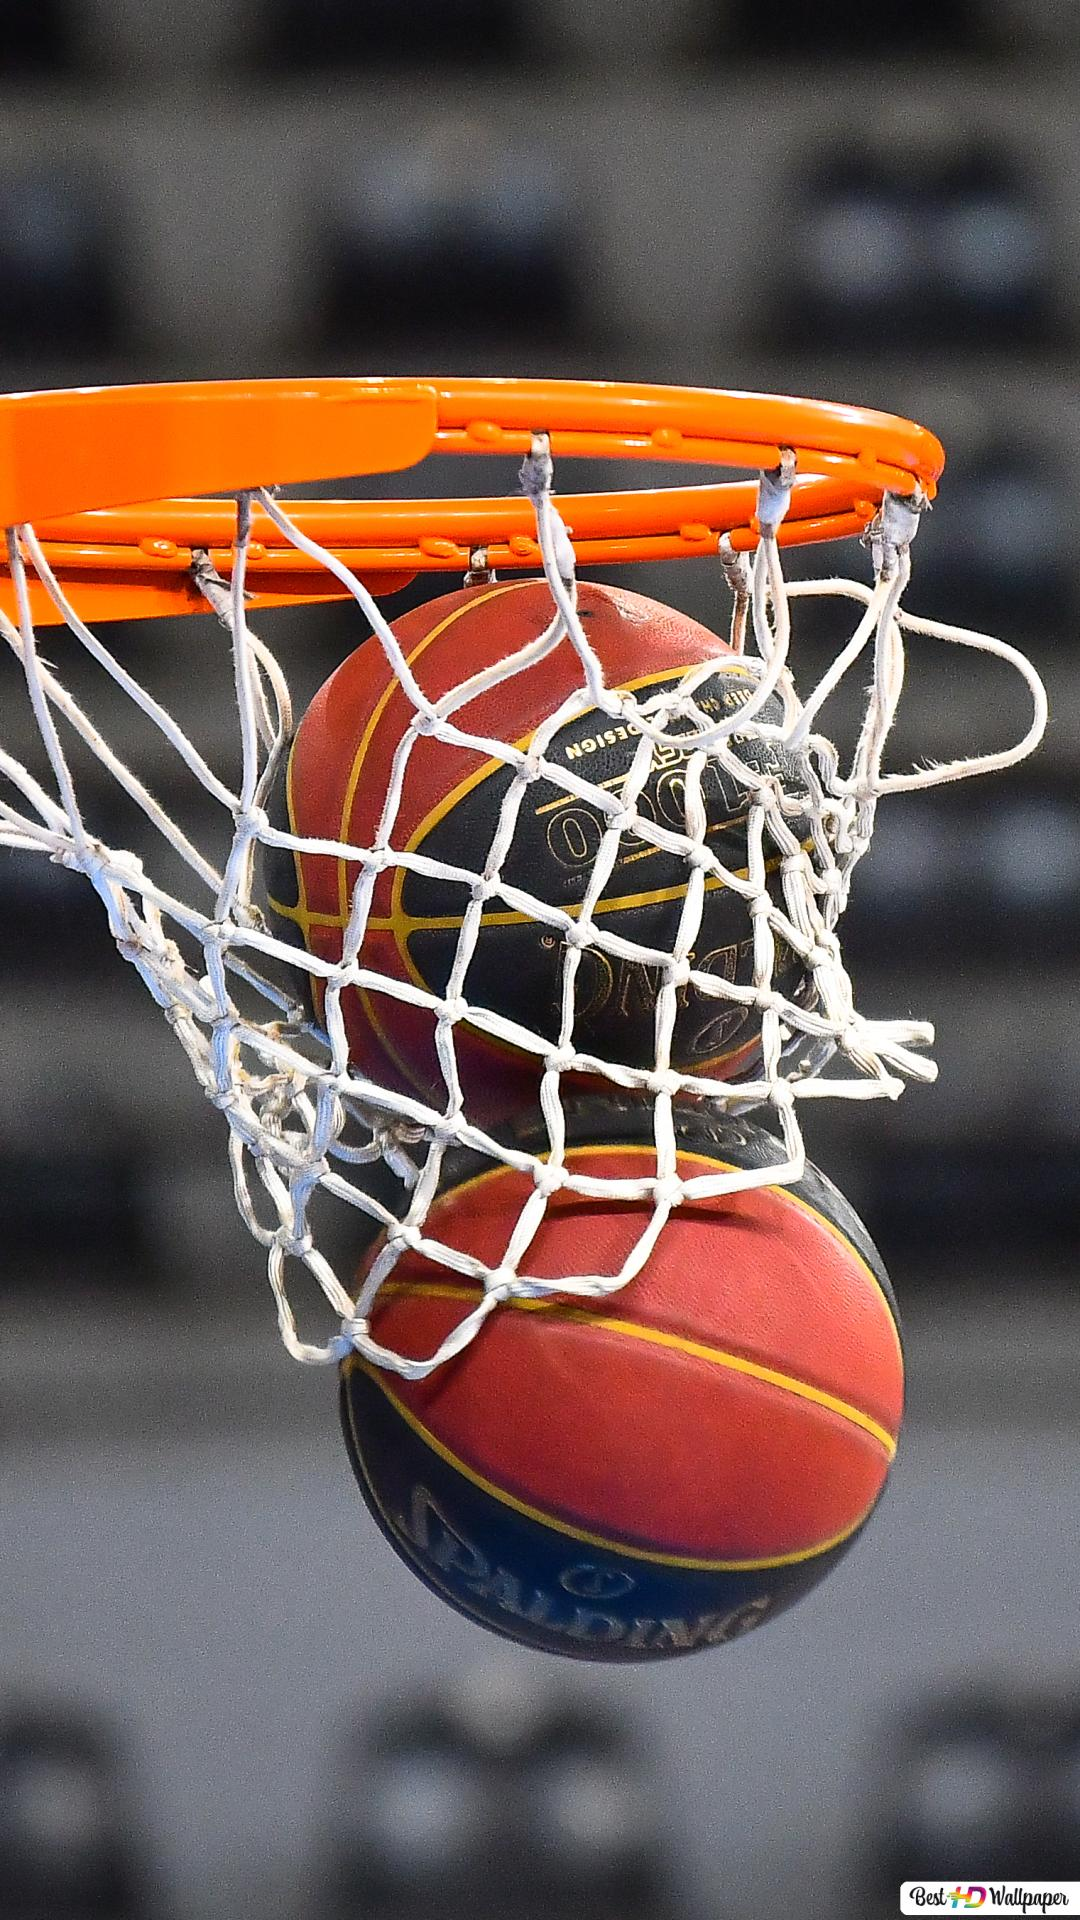 Two Balls Falling Down Through A Basketball Hoop Hd Wallpaper Download